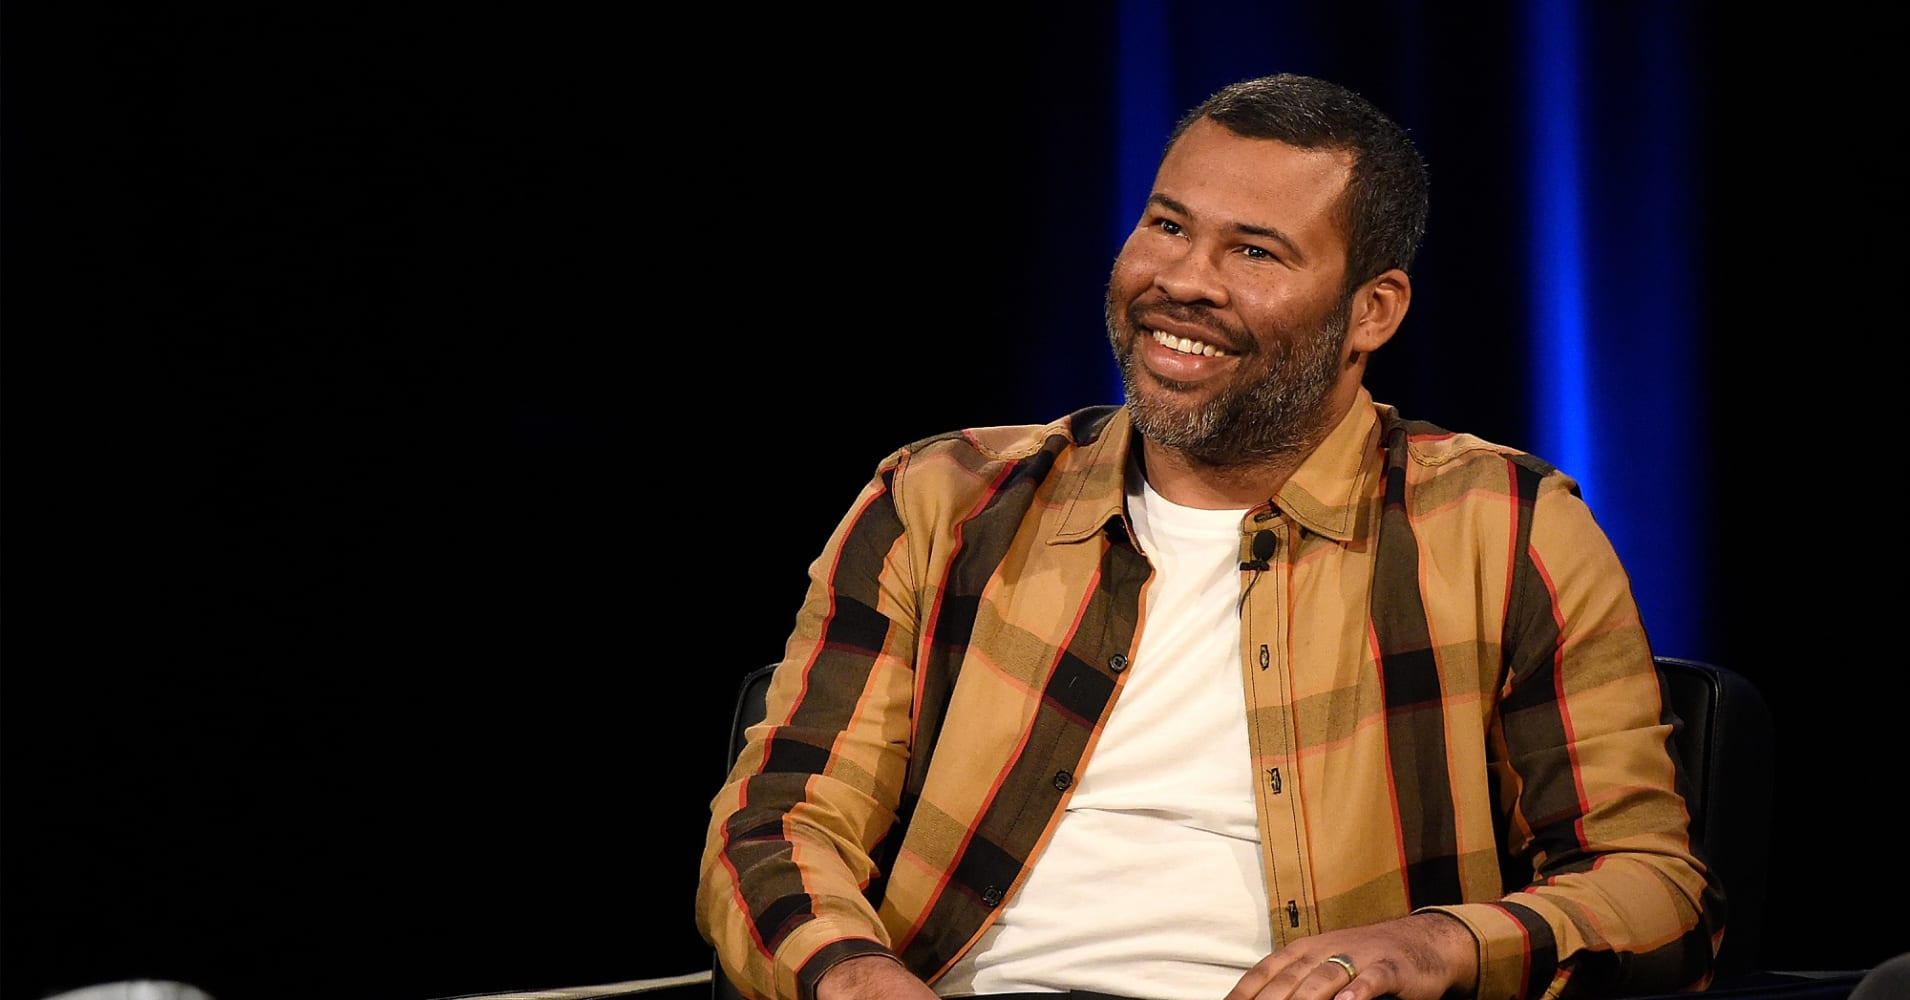 Jordan Peele Is First Black Screenwriter To Win Best Original Screenplay